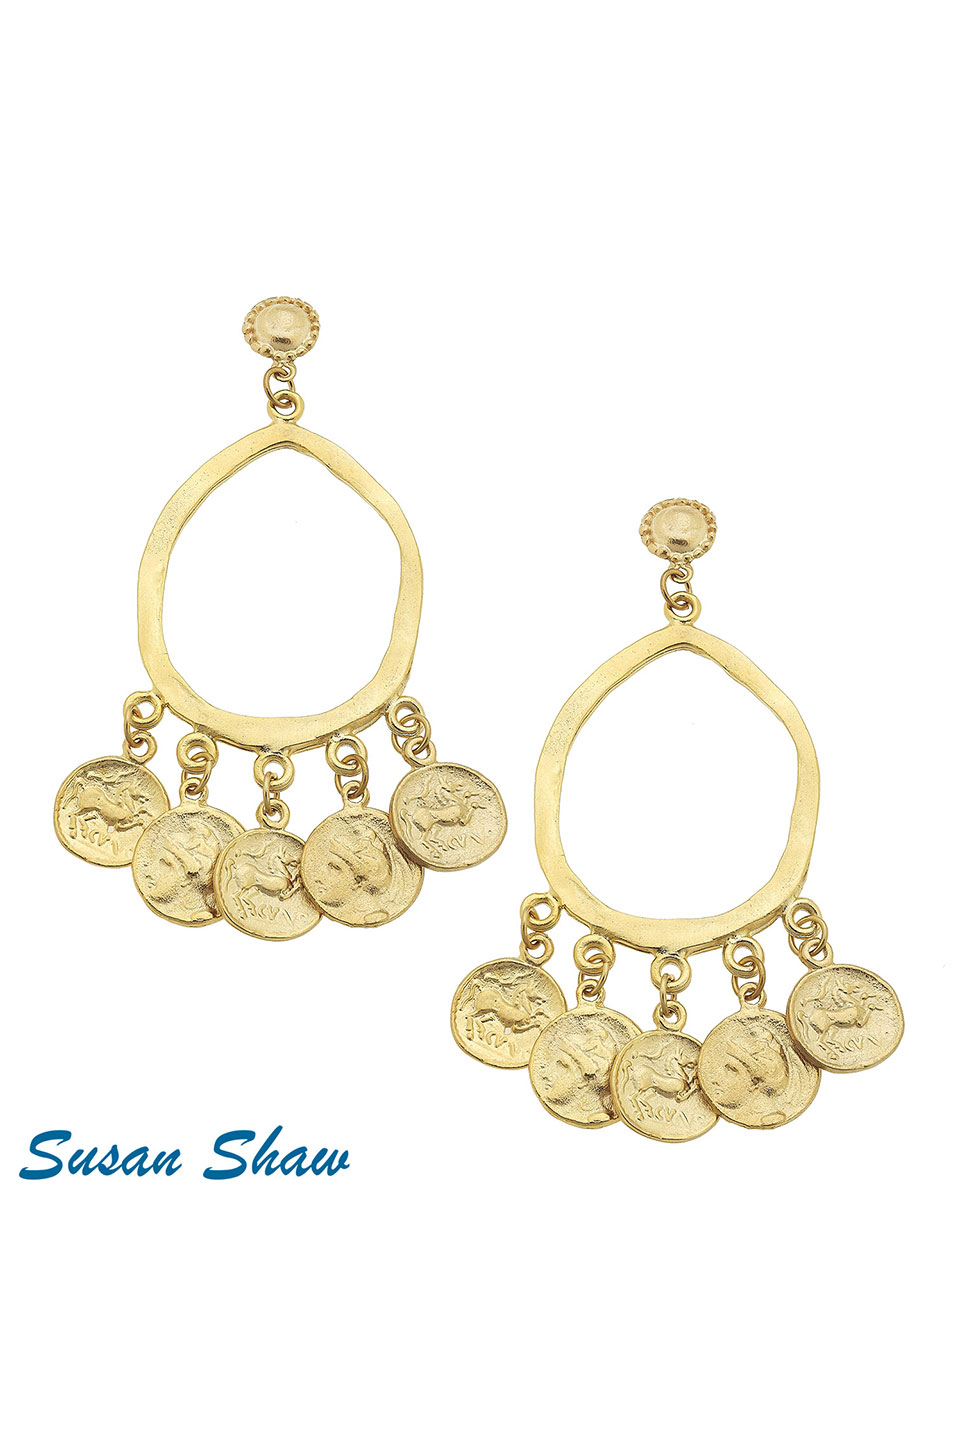 Susan Shaw Gold Open Oval & Coin Earrings